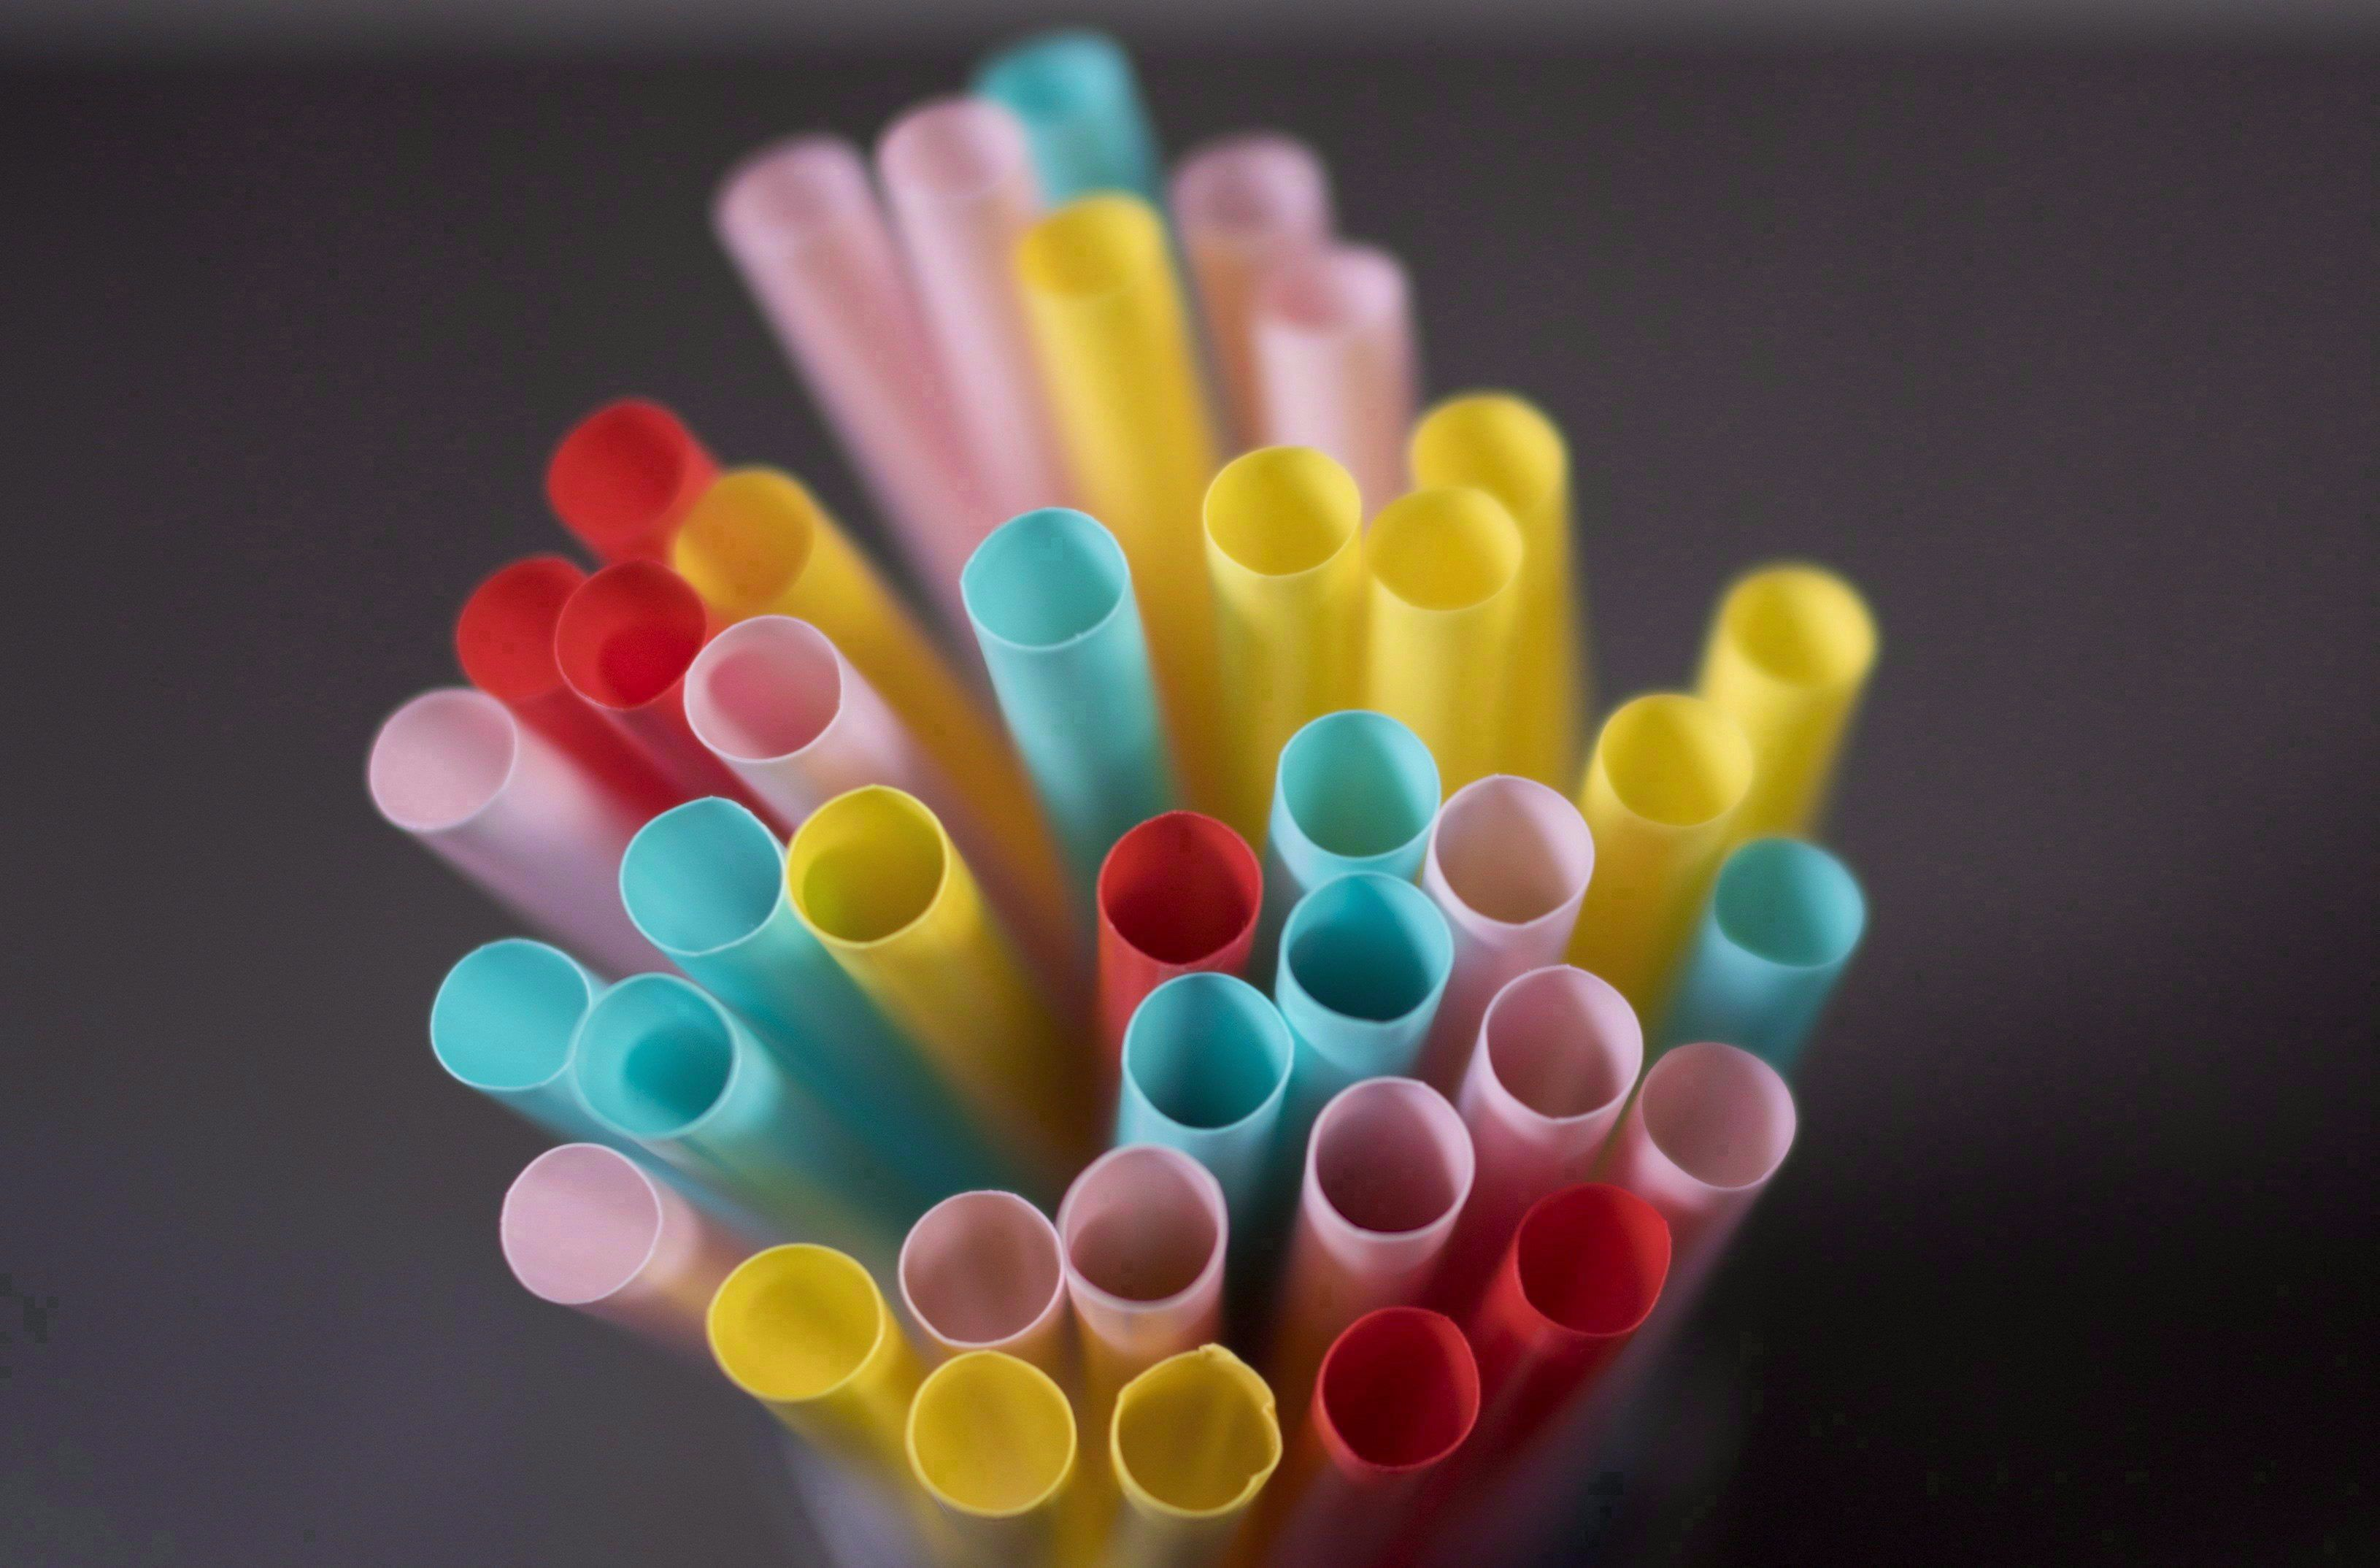 Reducing single-use plastics in the office, one renewable straw and cup at a time